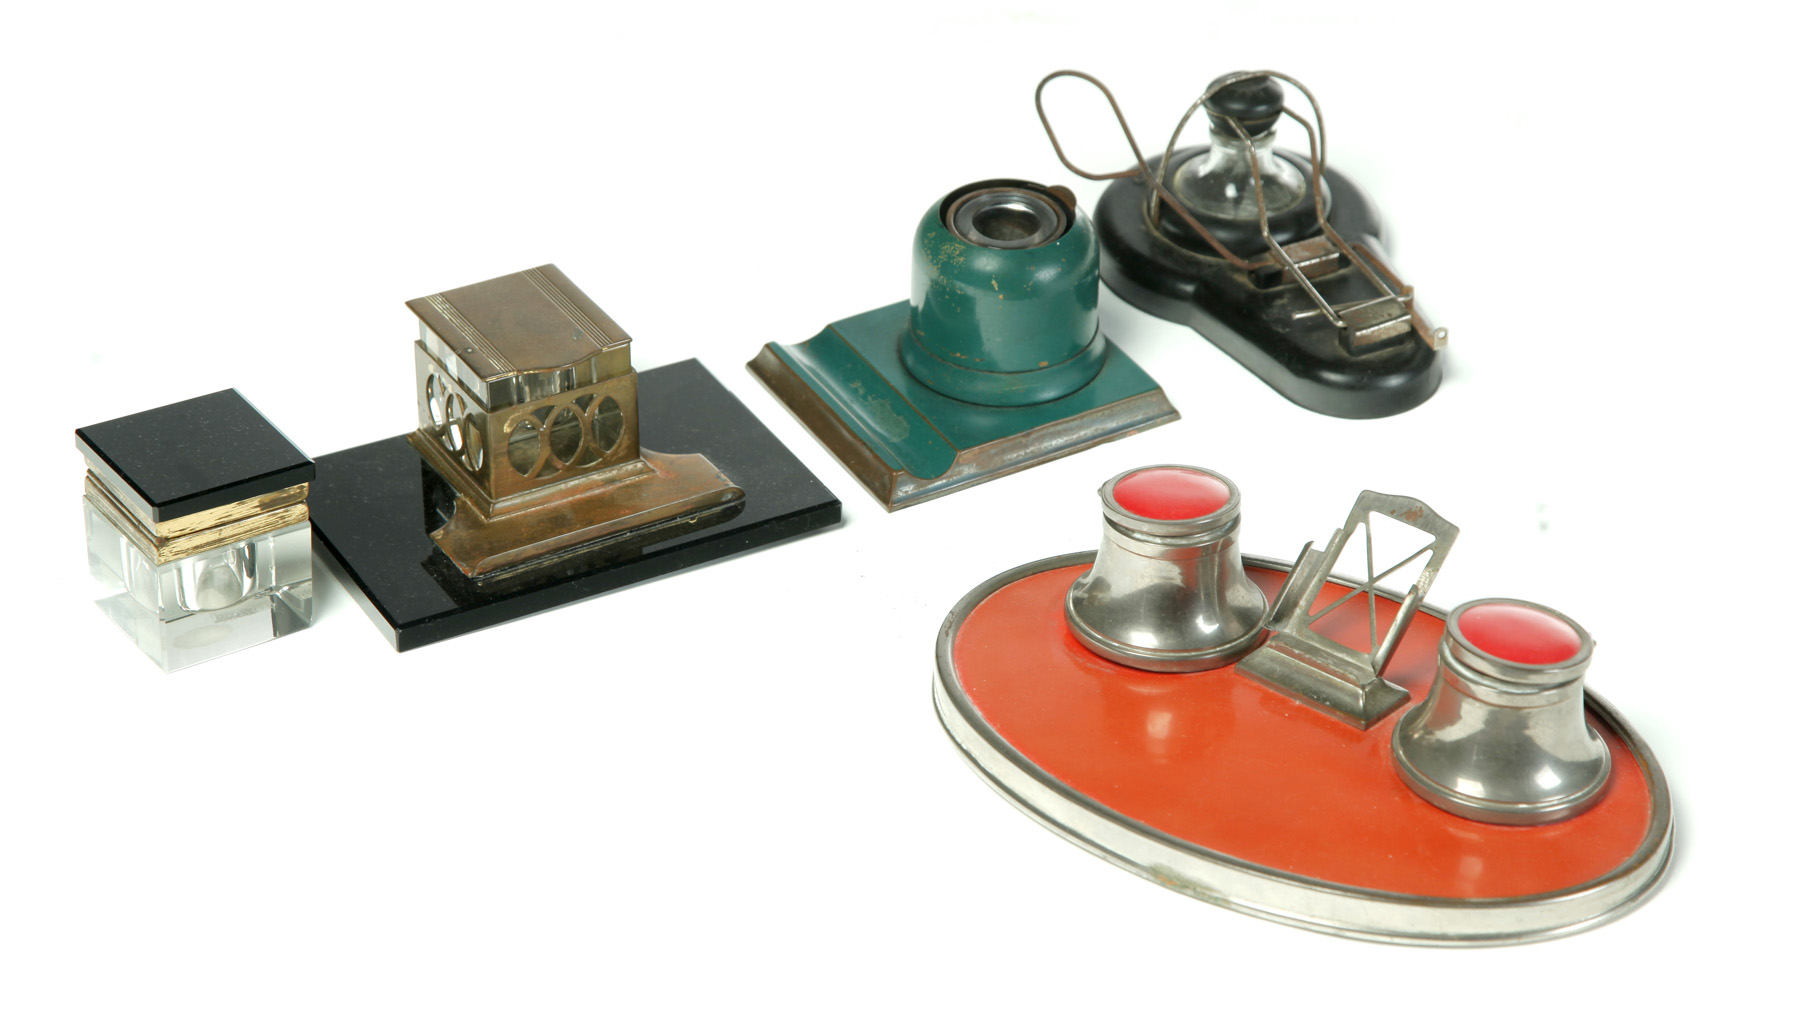 FOUR ART DECO INKSTANDS AND AN ART DECO INKWELL.